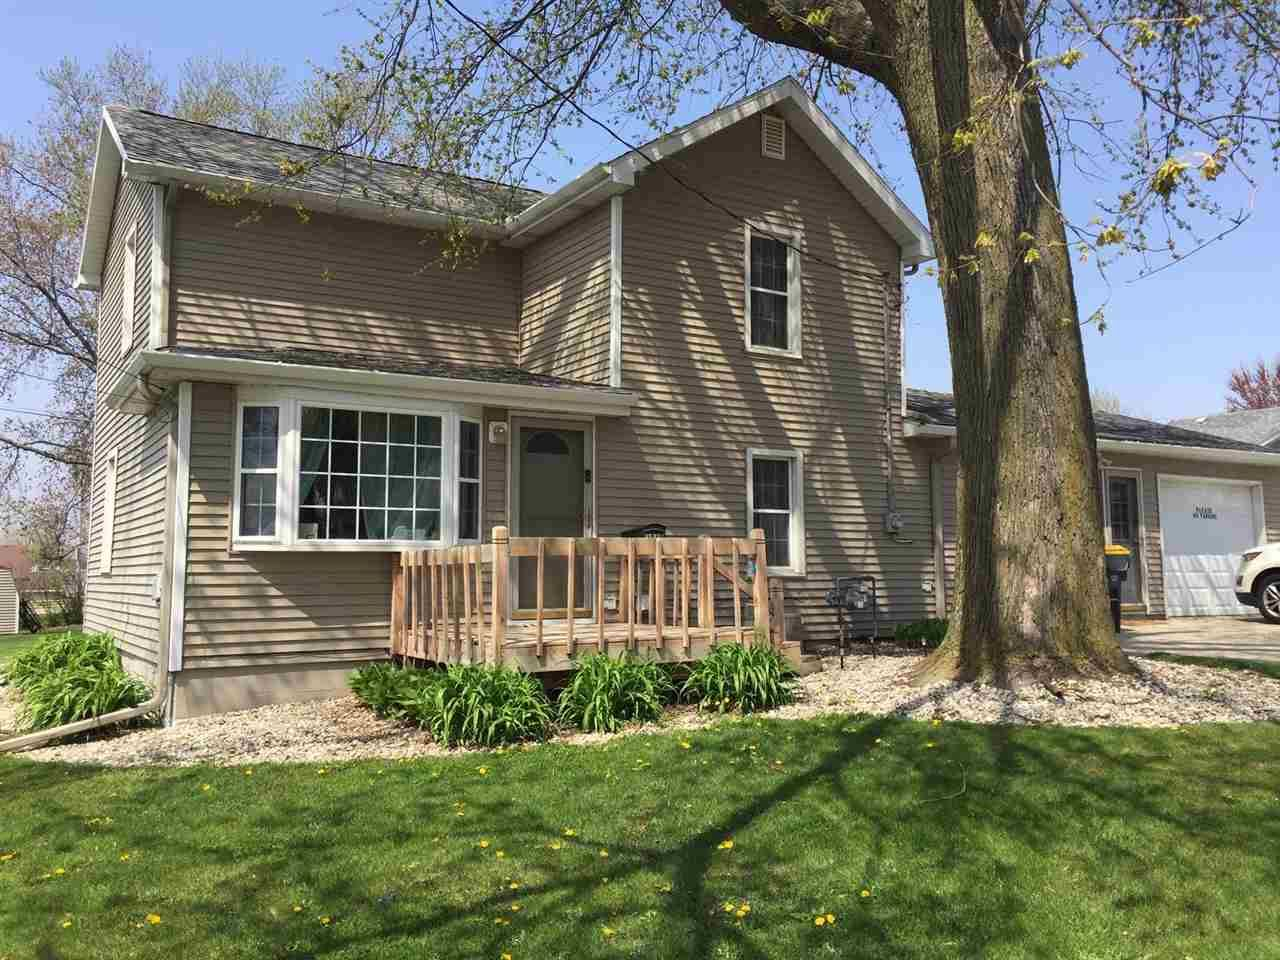 1049 7th Ave, Monroe, WI 53566 - #: 1907729